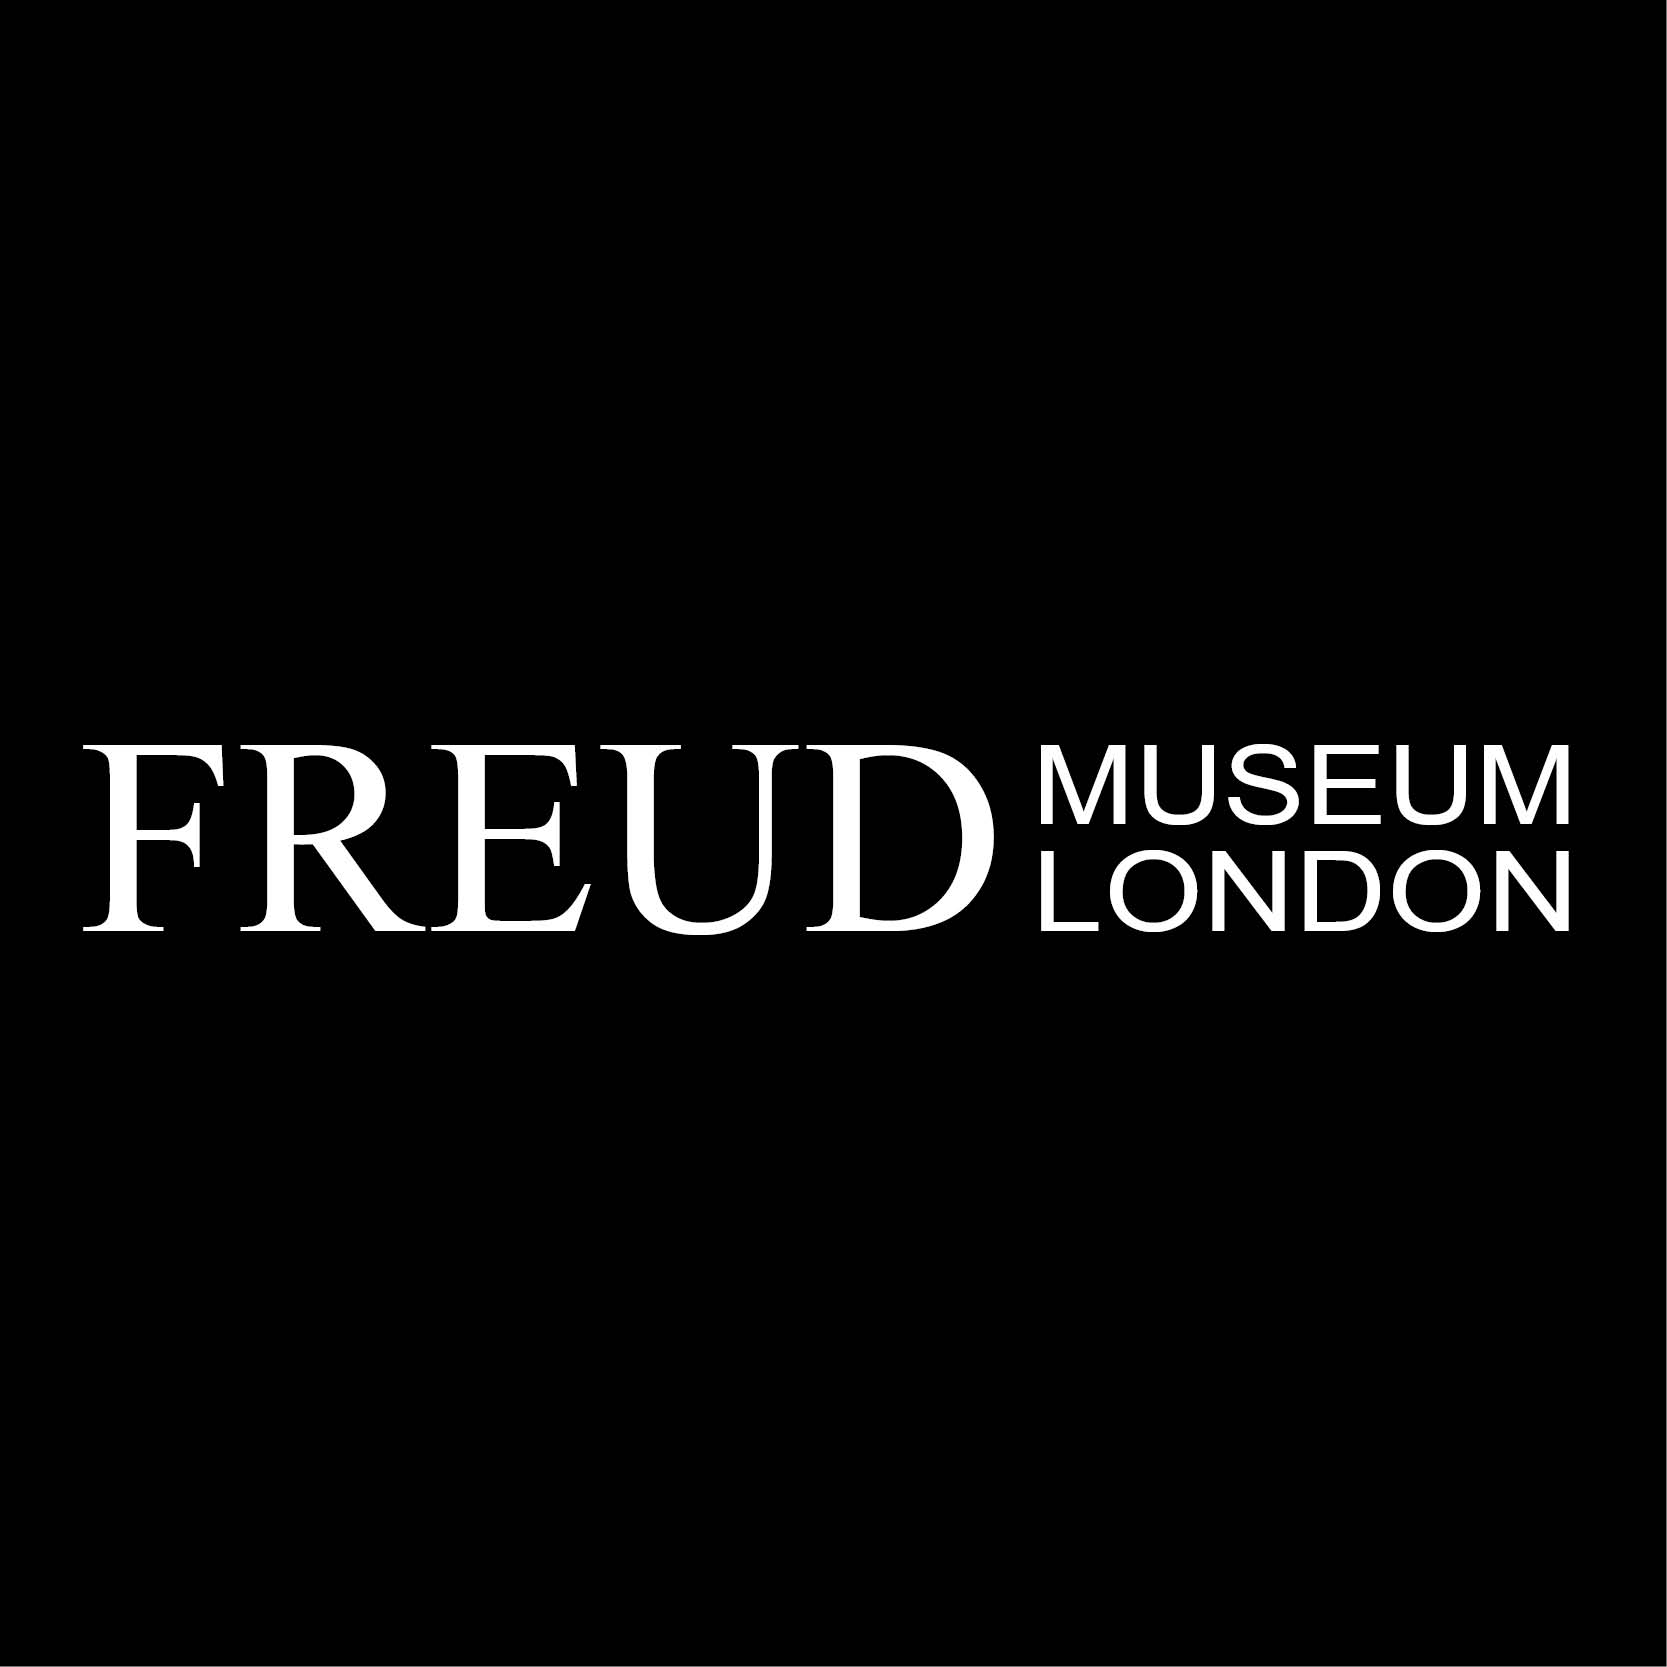 freud museum london psychoanalysis podcasts